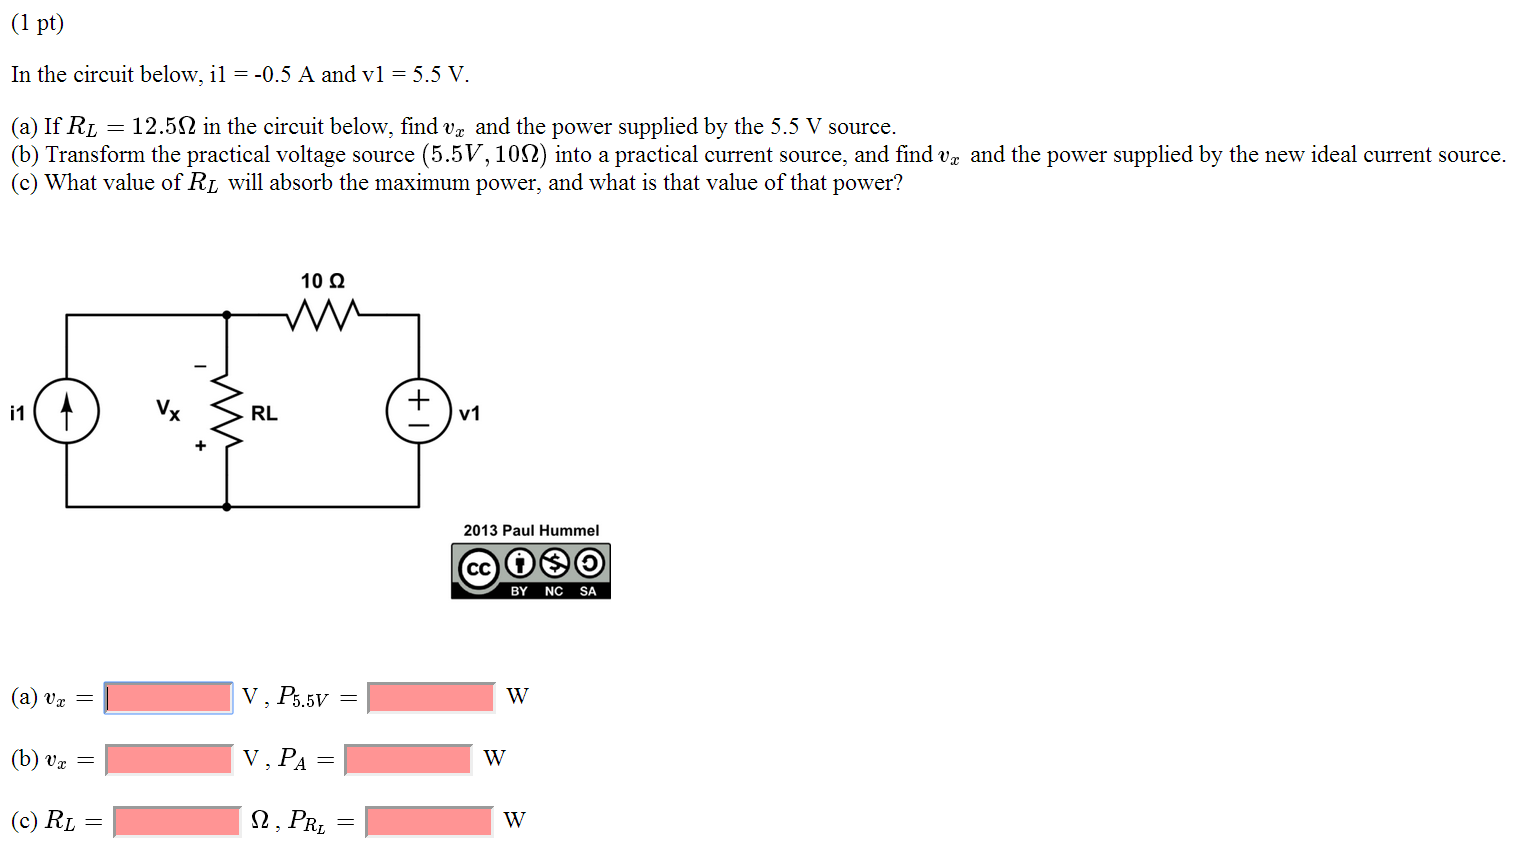 In the circuit below, il = -0.5 A and vl = 5.5 V.